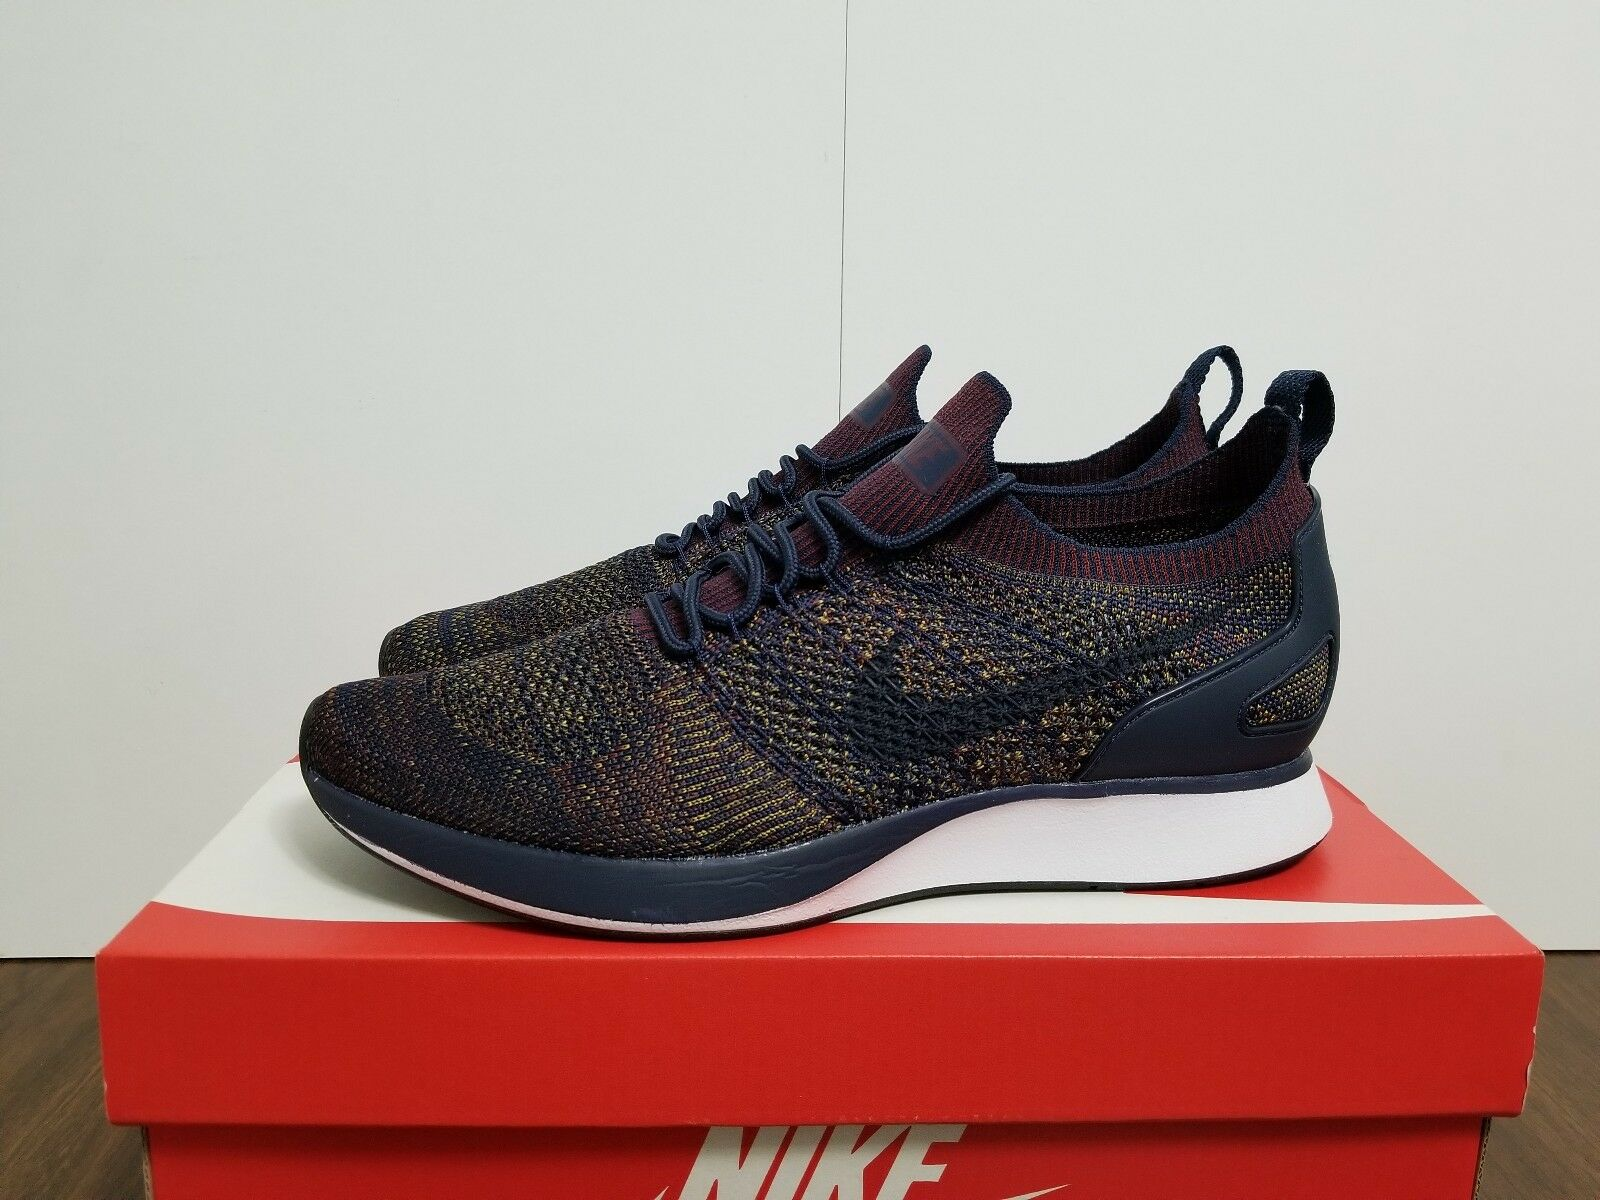 AIR ZOOM MARIAH FLYKNIT RACER COLLEGE NAVY / BORDEAUX 918264 401